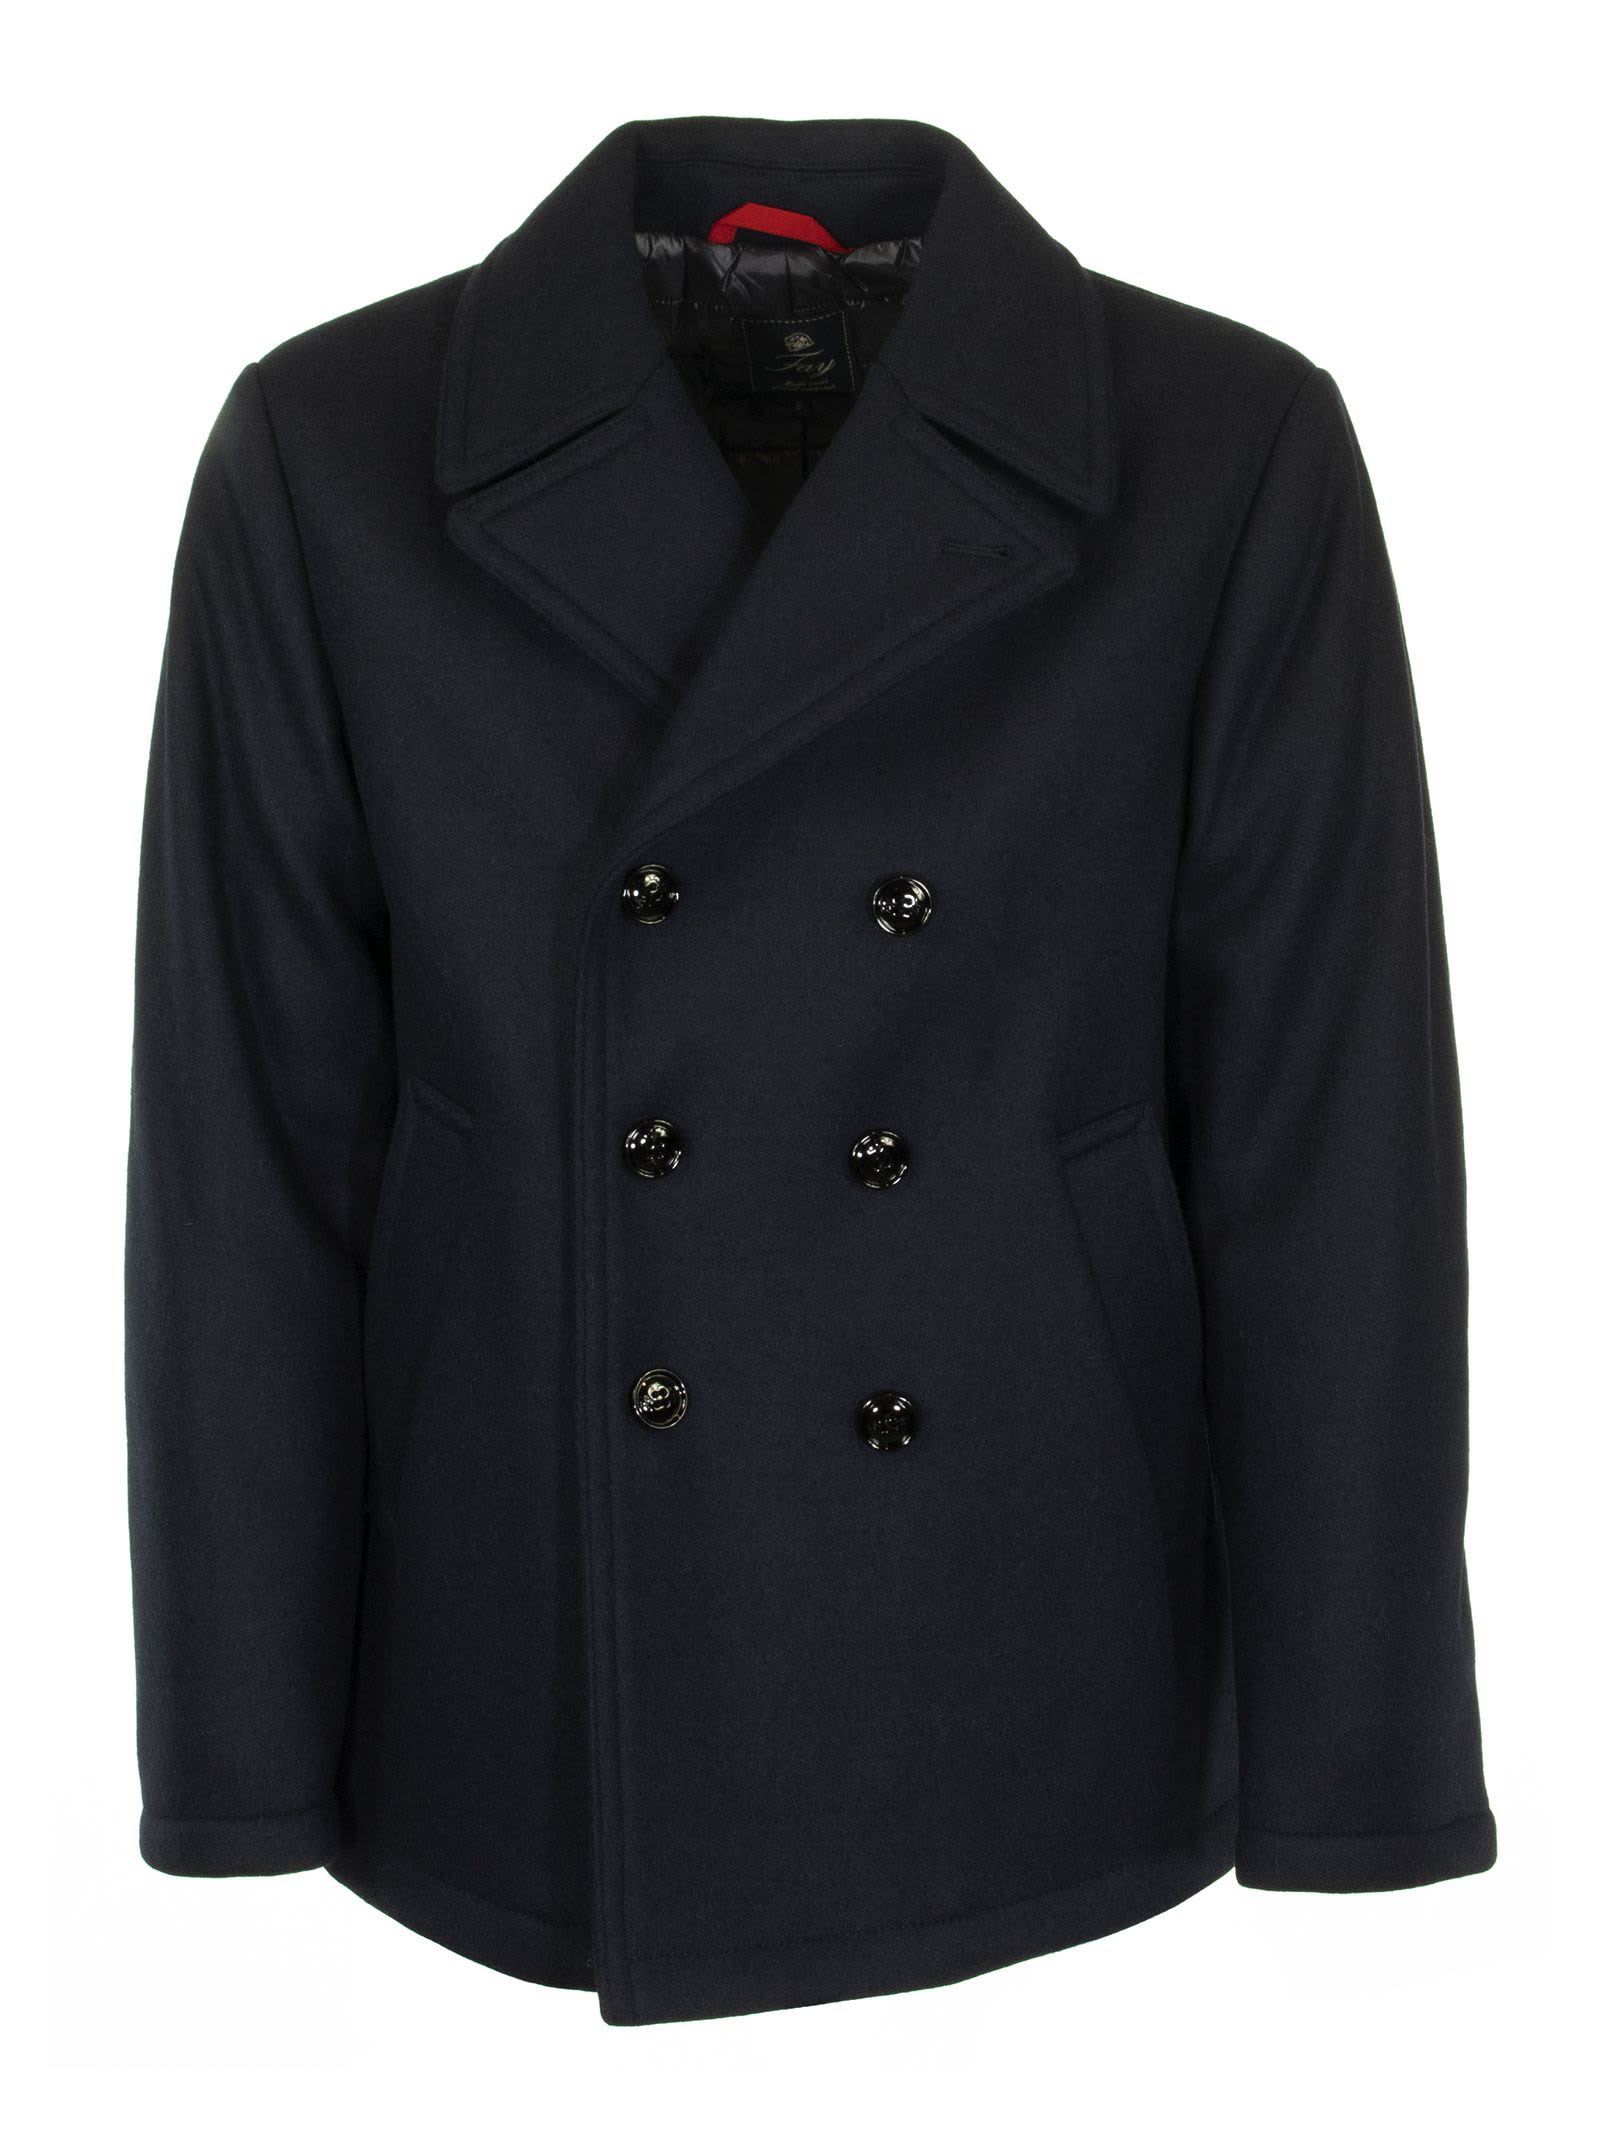 Double-breasted peacoat with six buttons, in a dyed wool yarn and fabric mix. The elegant, urban form with lapels and waist pockets, is a faithful style ally, adorned by a stitched Fay logo on the rear collar. Composition: SHELL: 70%WOOL 25%POLYESTER 5% OTHER FIBRES LINING: 100% POLYAMIDE FILLING: 100% POLYESTER